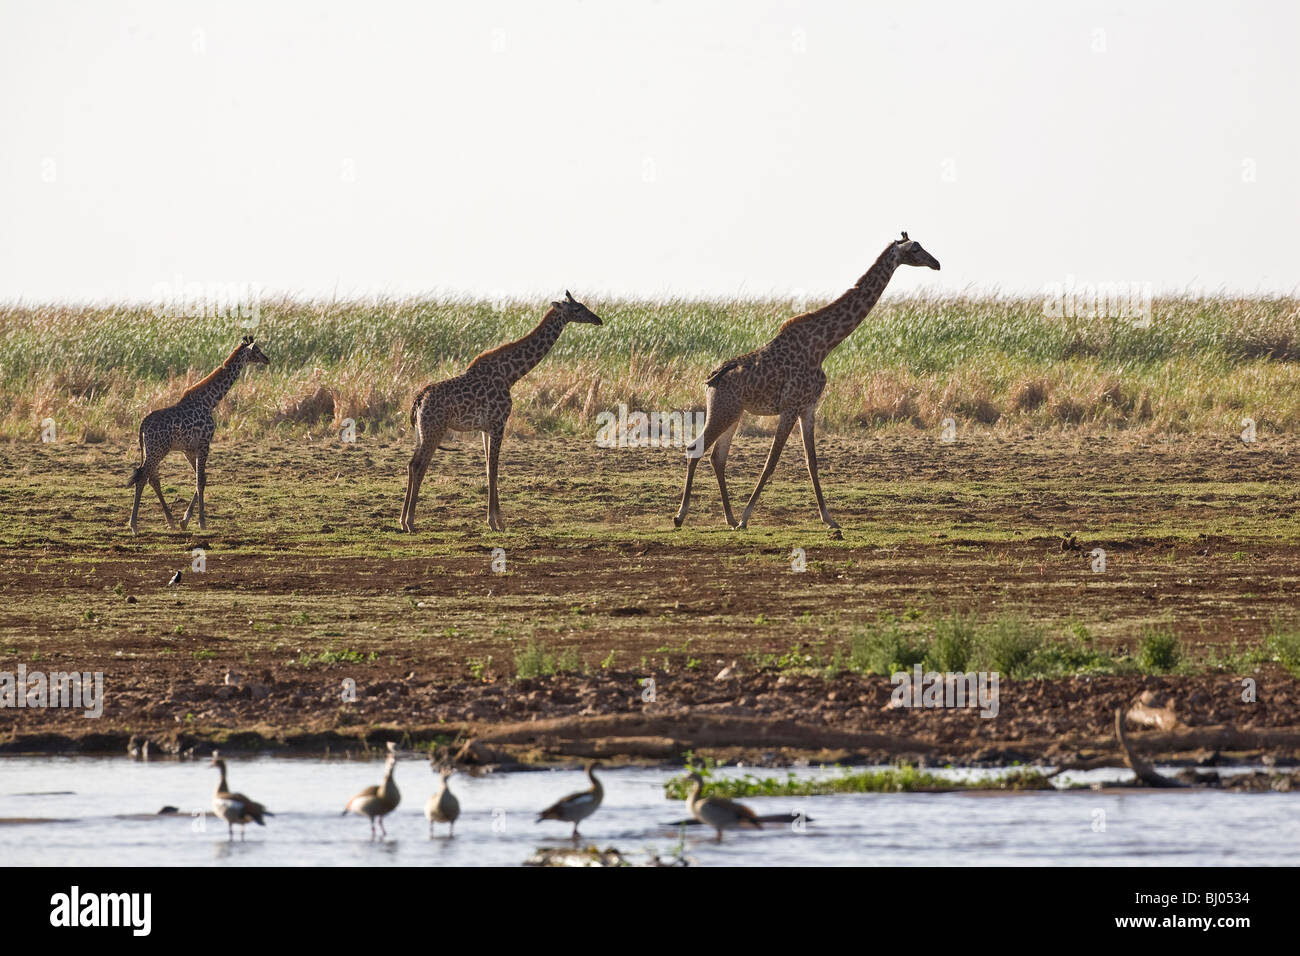 Three giraffes  Giraffa camelopardalis tippelskirchi walking in procession along a river bank in Lake Manyara, Tanzania, - Stock Image